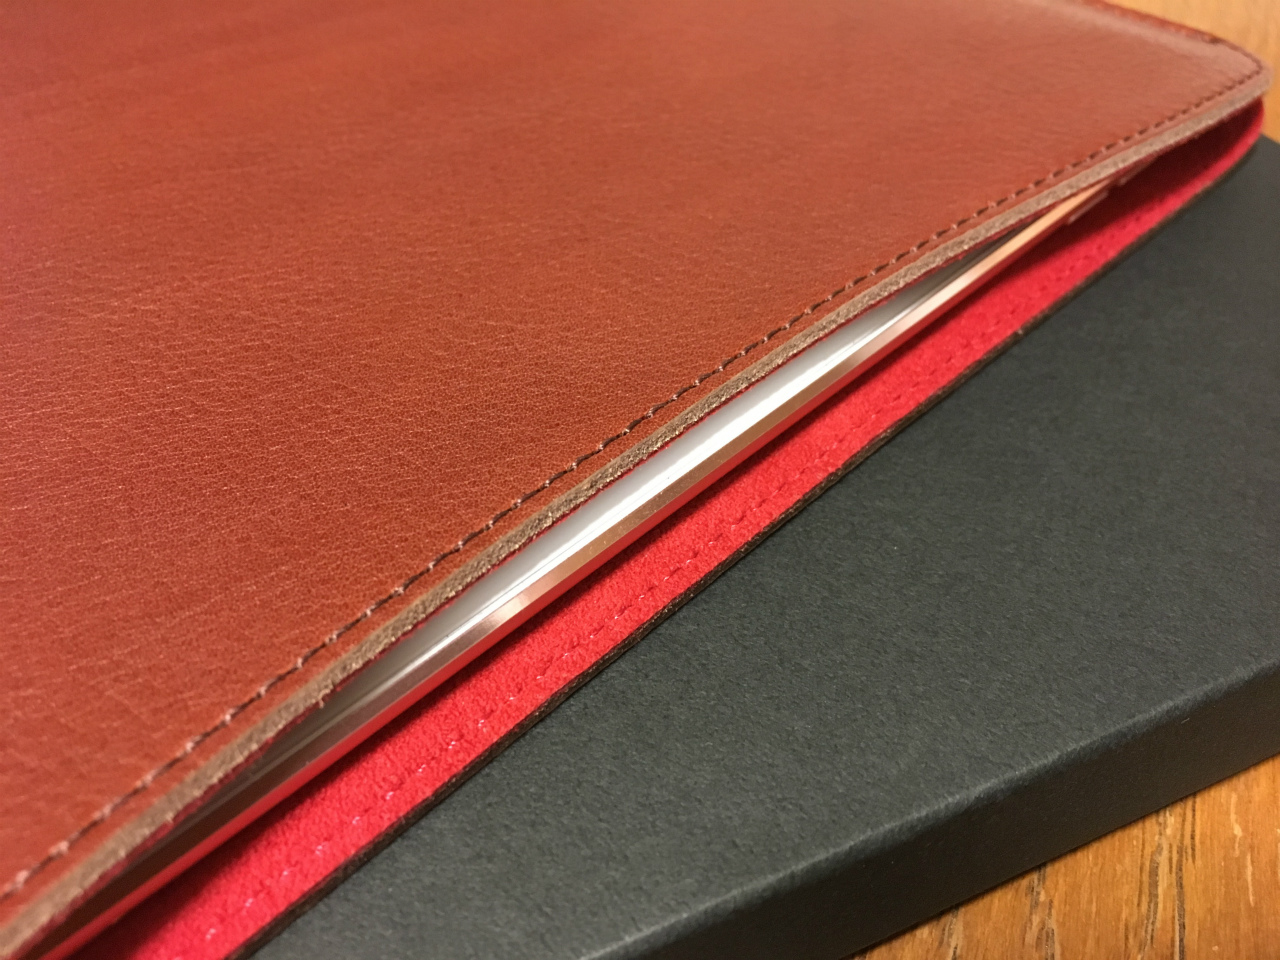 kunitachi-leather-sleeve-for-ipadpro-06